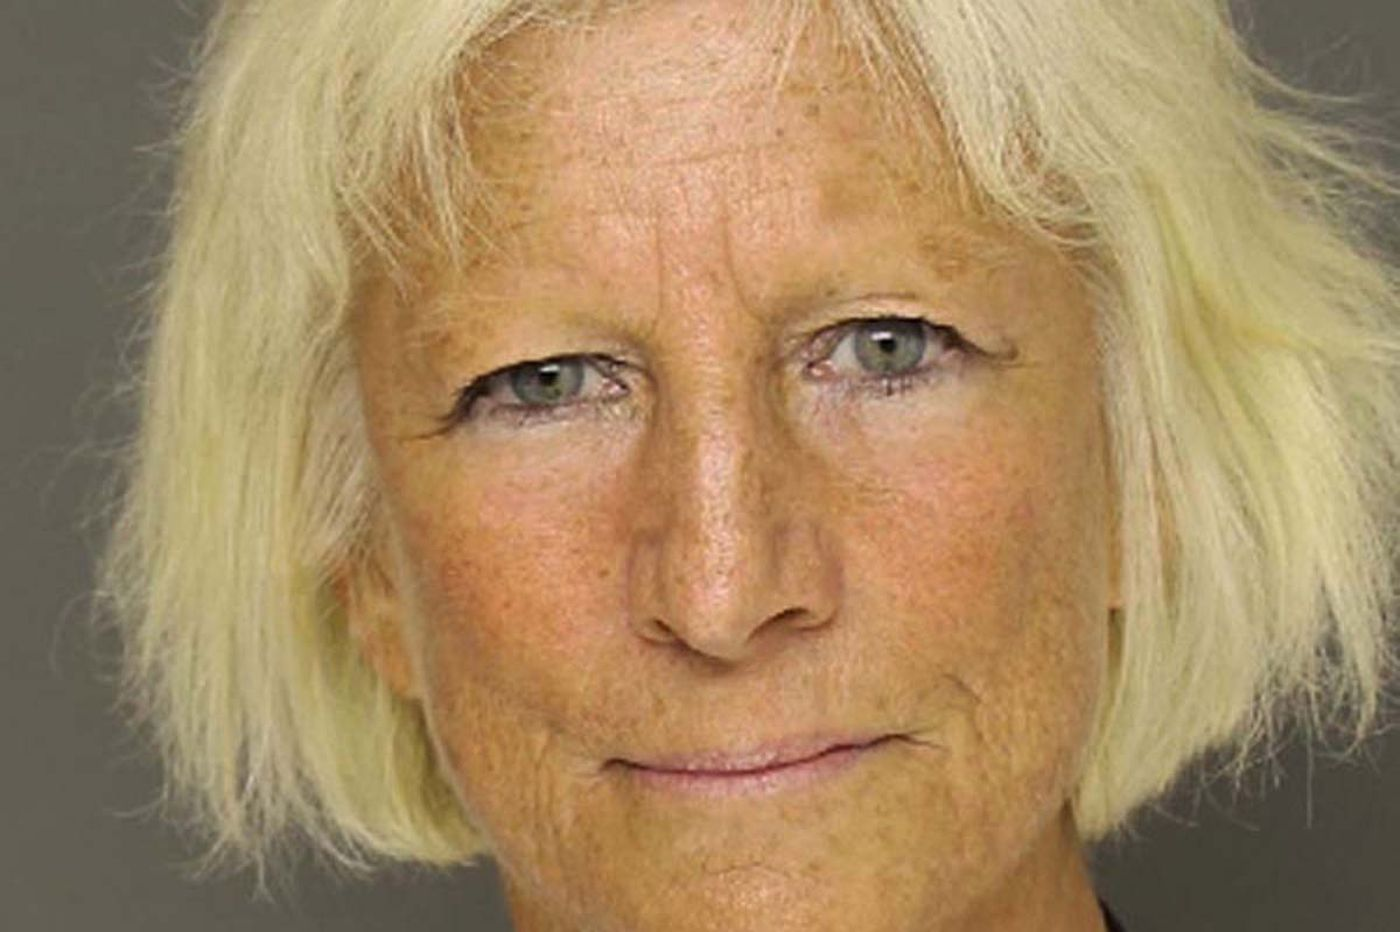 Main Line woman, 62, heroin addict, and not unique